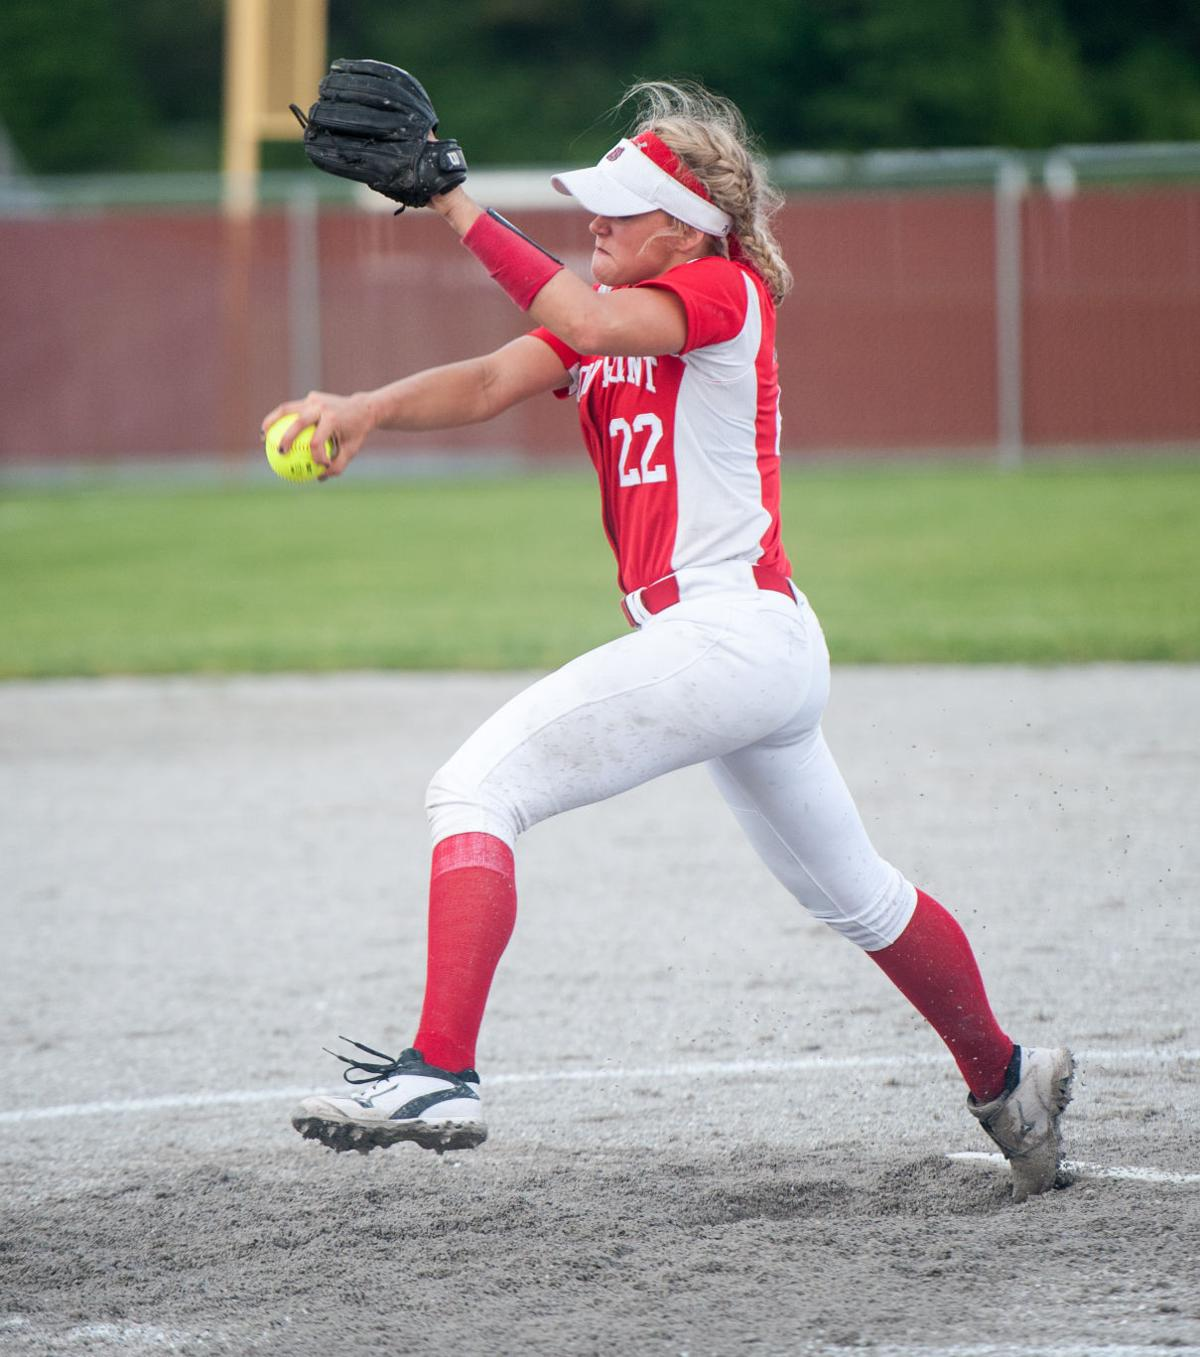 Gallery: Class 4A Crown Point Sectional title game ...